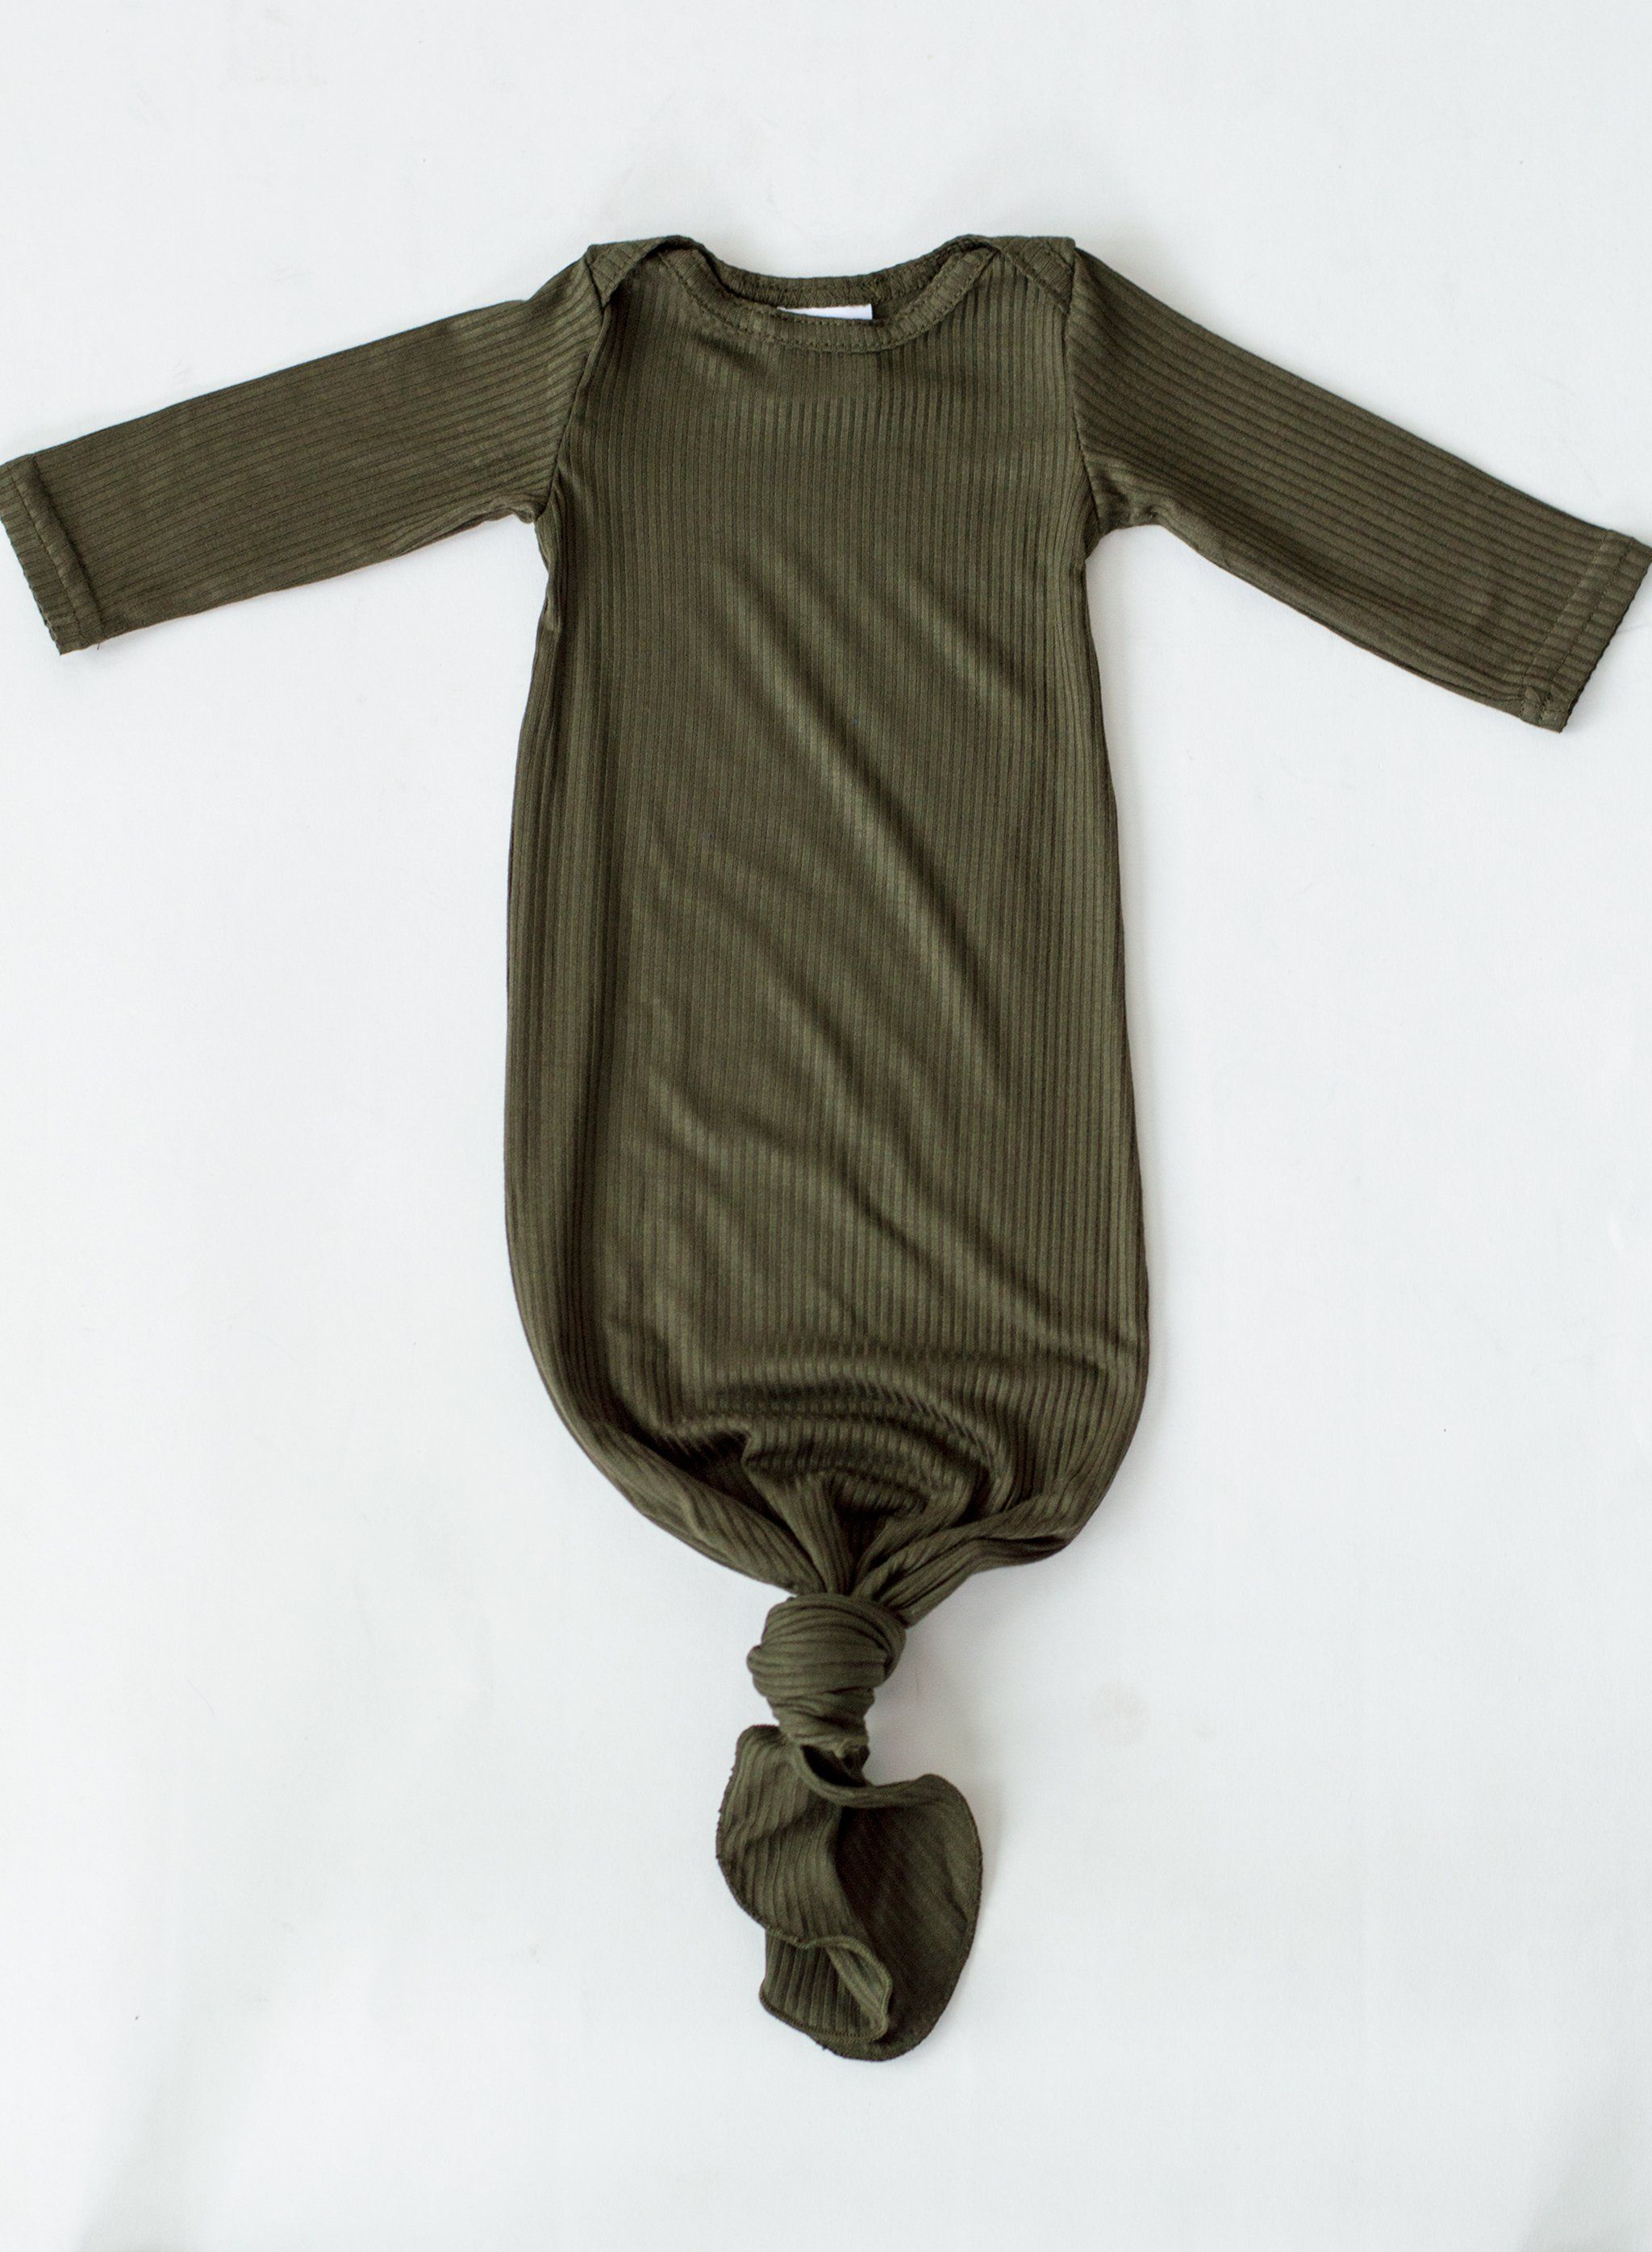 dc4ea3bb9 Welcome Home Little One. Our Little Nursling™ snuggle knotted baby ...